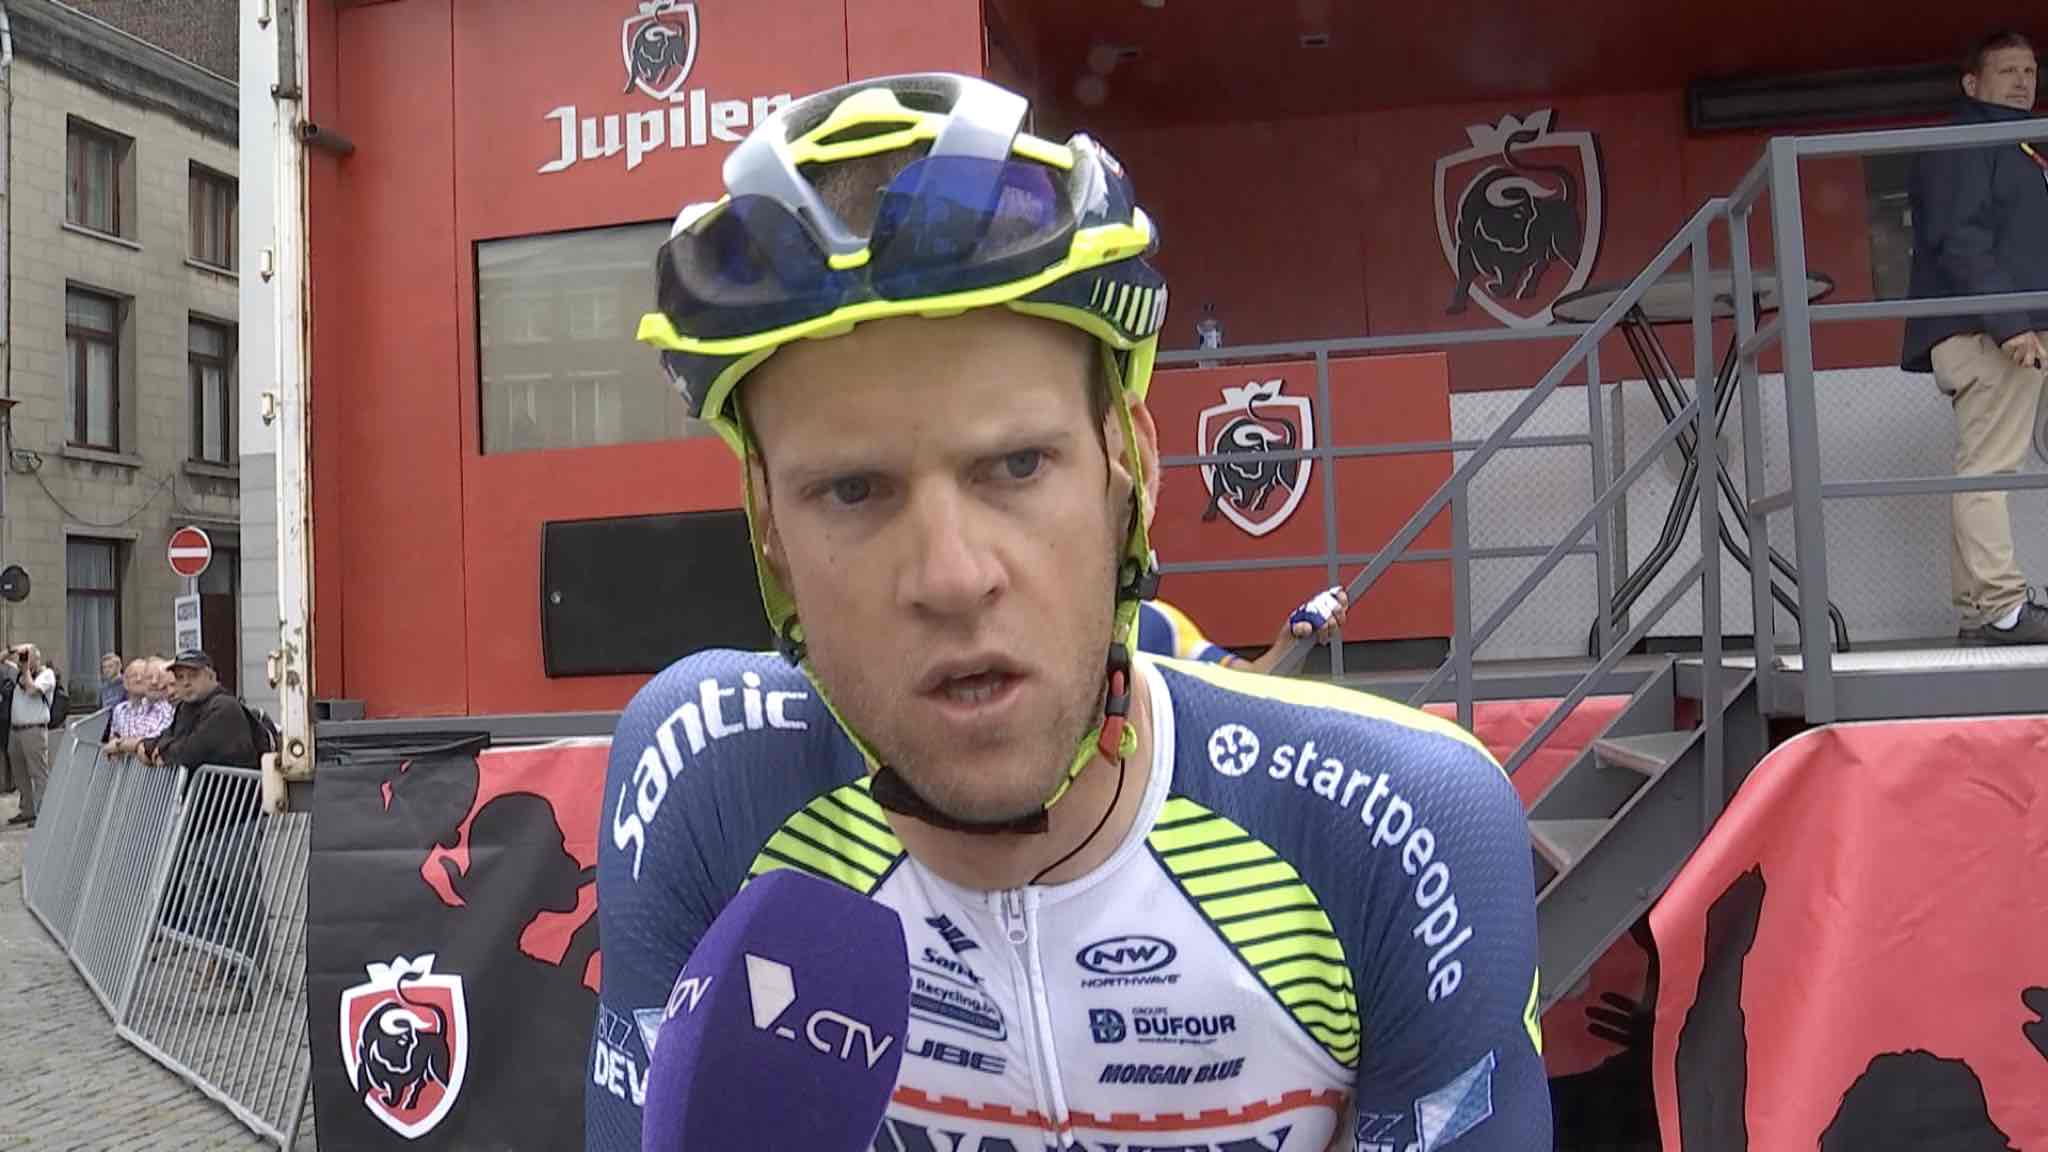 Thomas Degand à l'aube de son second Tour de France